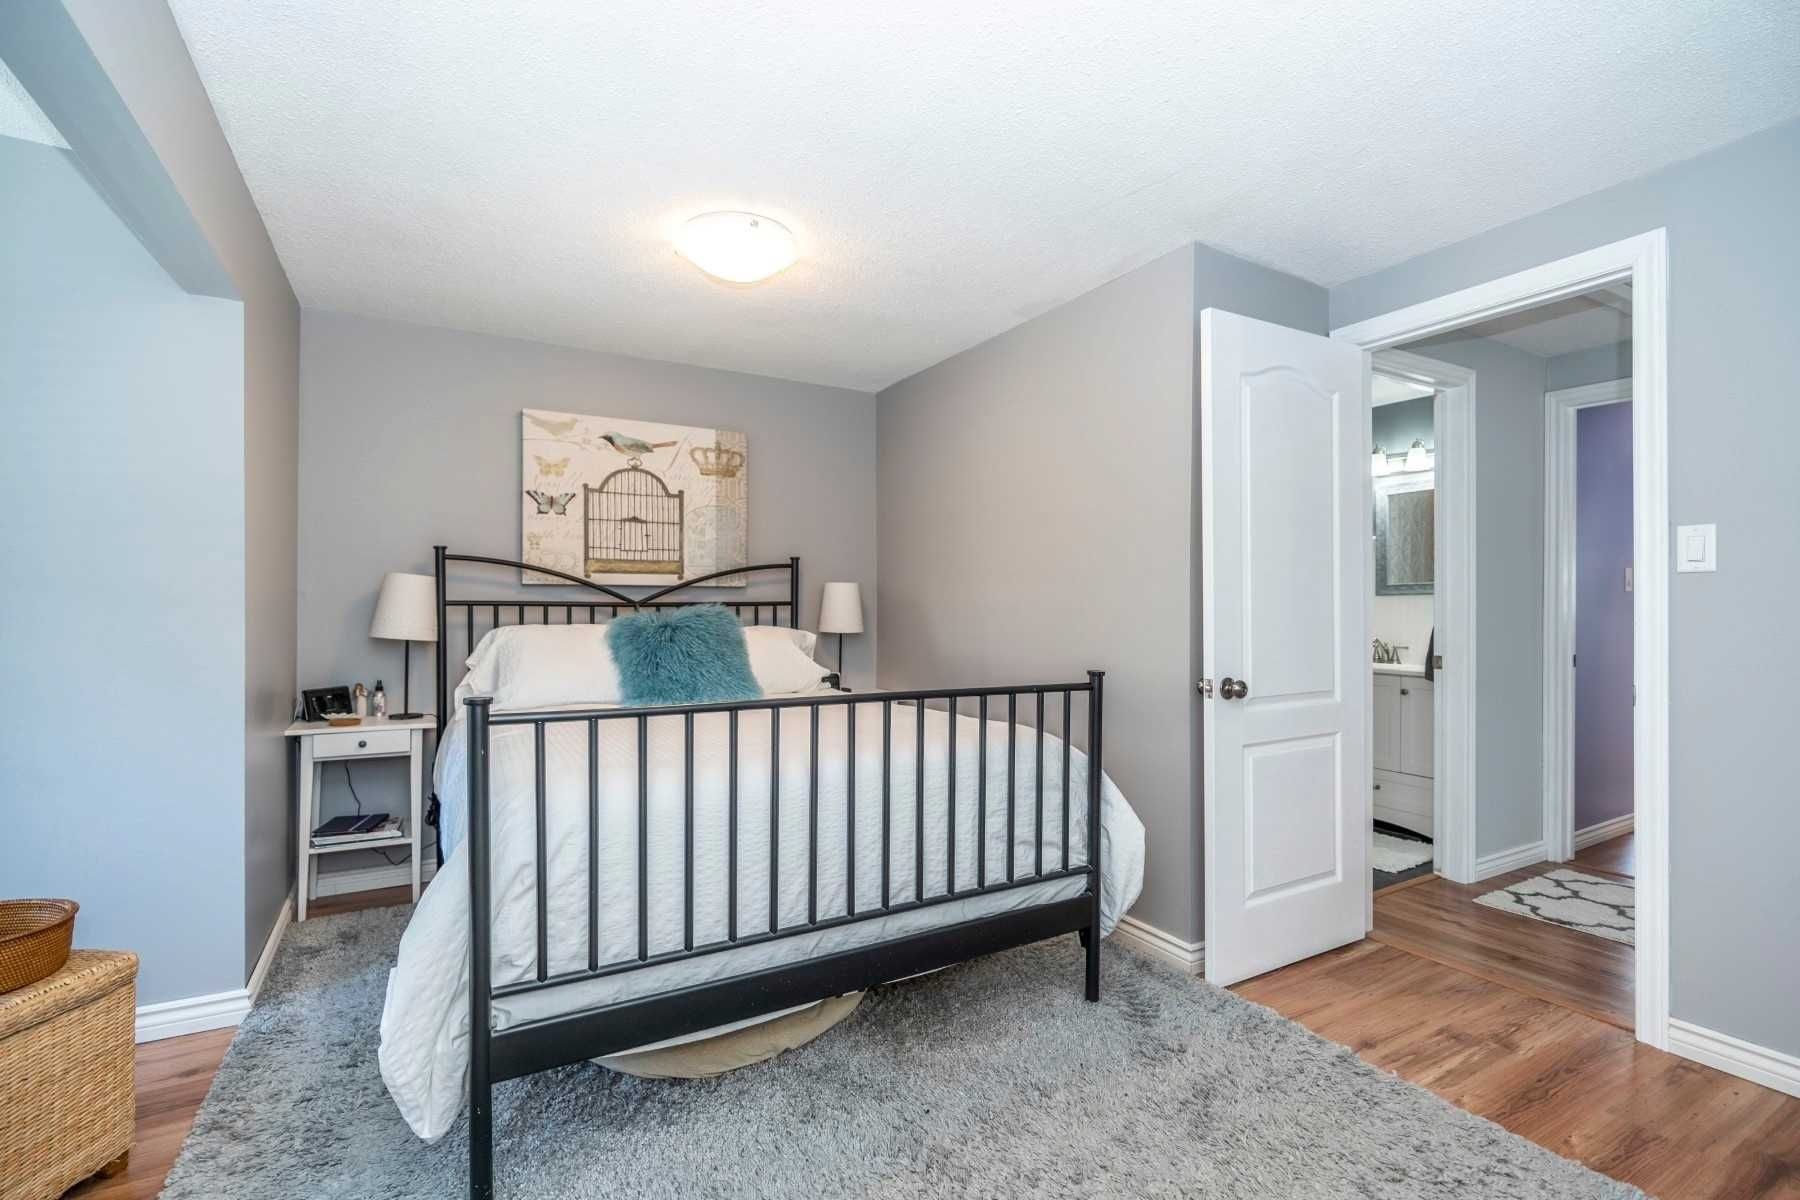 Photo 13: Photos: 547 Camelot Drive in Oshawa: Eastdale House (2-Storey) for sale : MLS®# E4529227